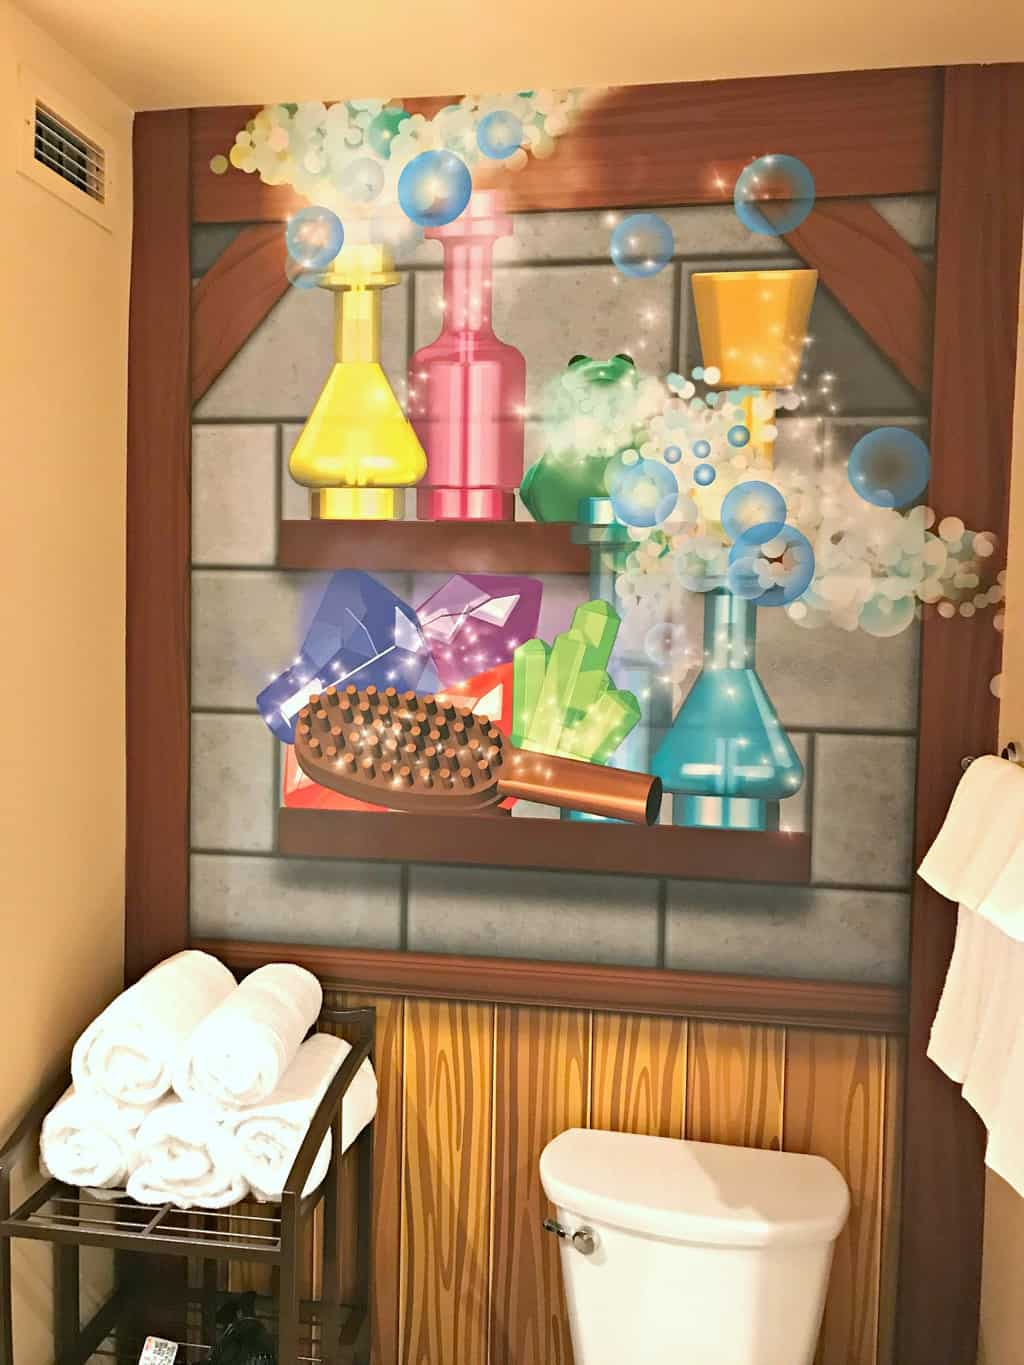 The bathroom in the Magic Wizard Room at the LEGOLAND Castle Hotel